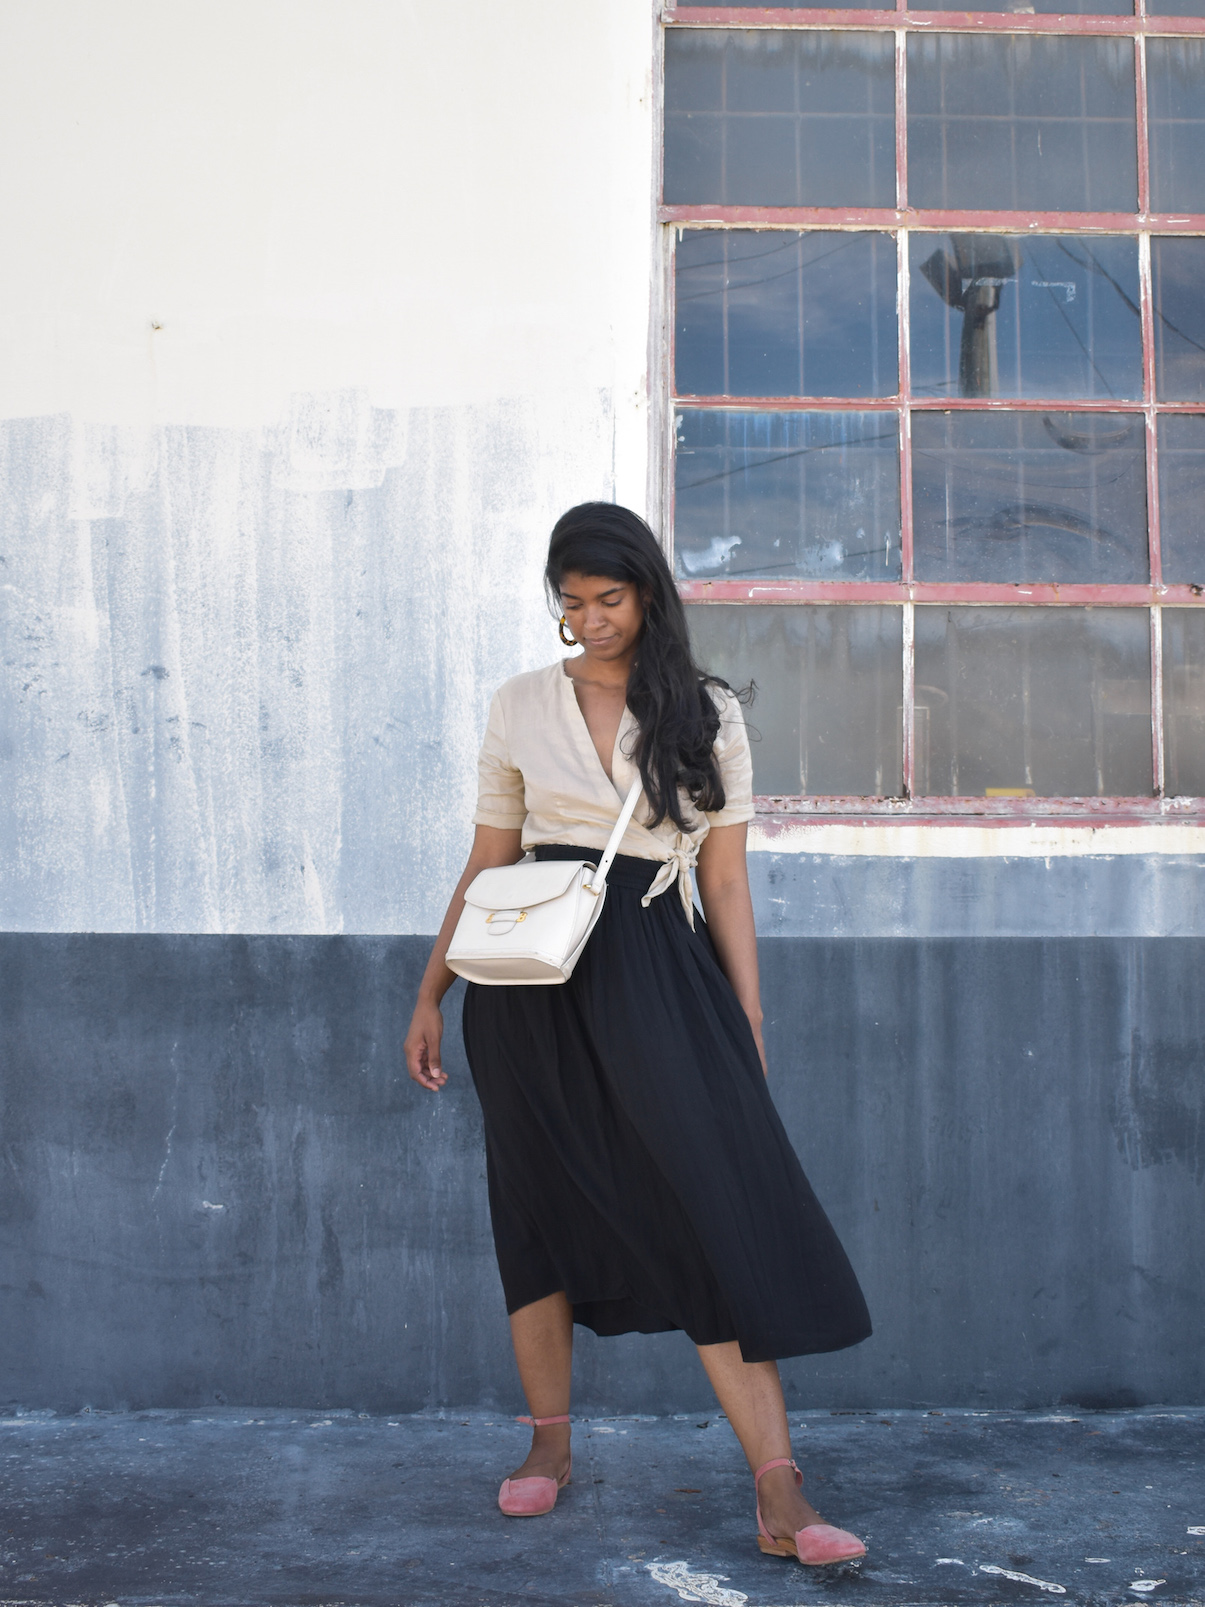 DIY Classic Vintage White Purse // Week Of Outfits With Élan Byrd On The Good Trade